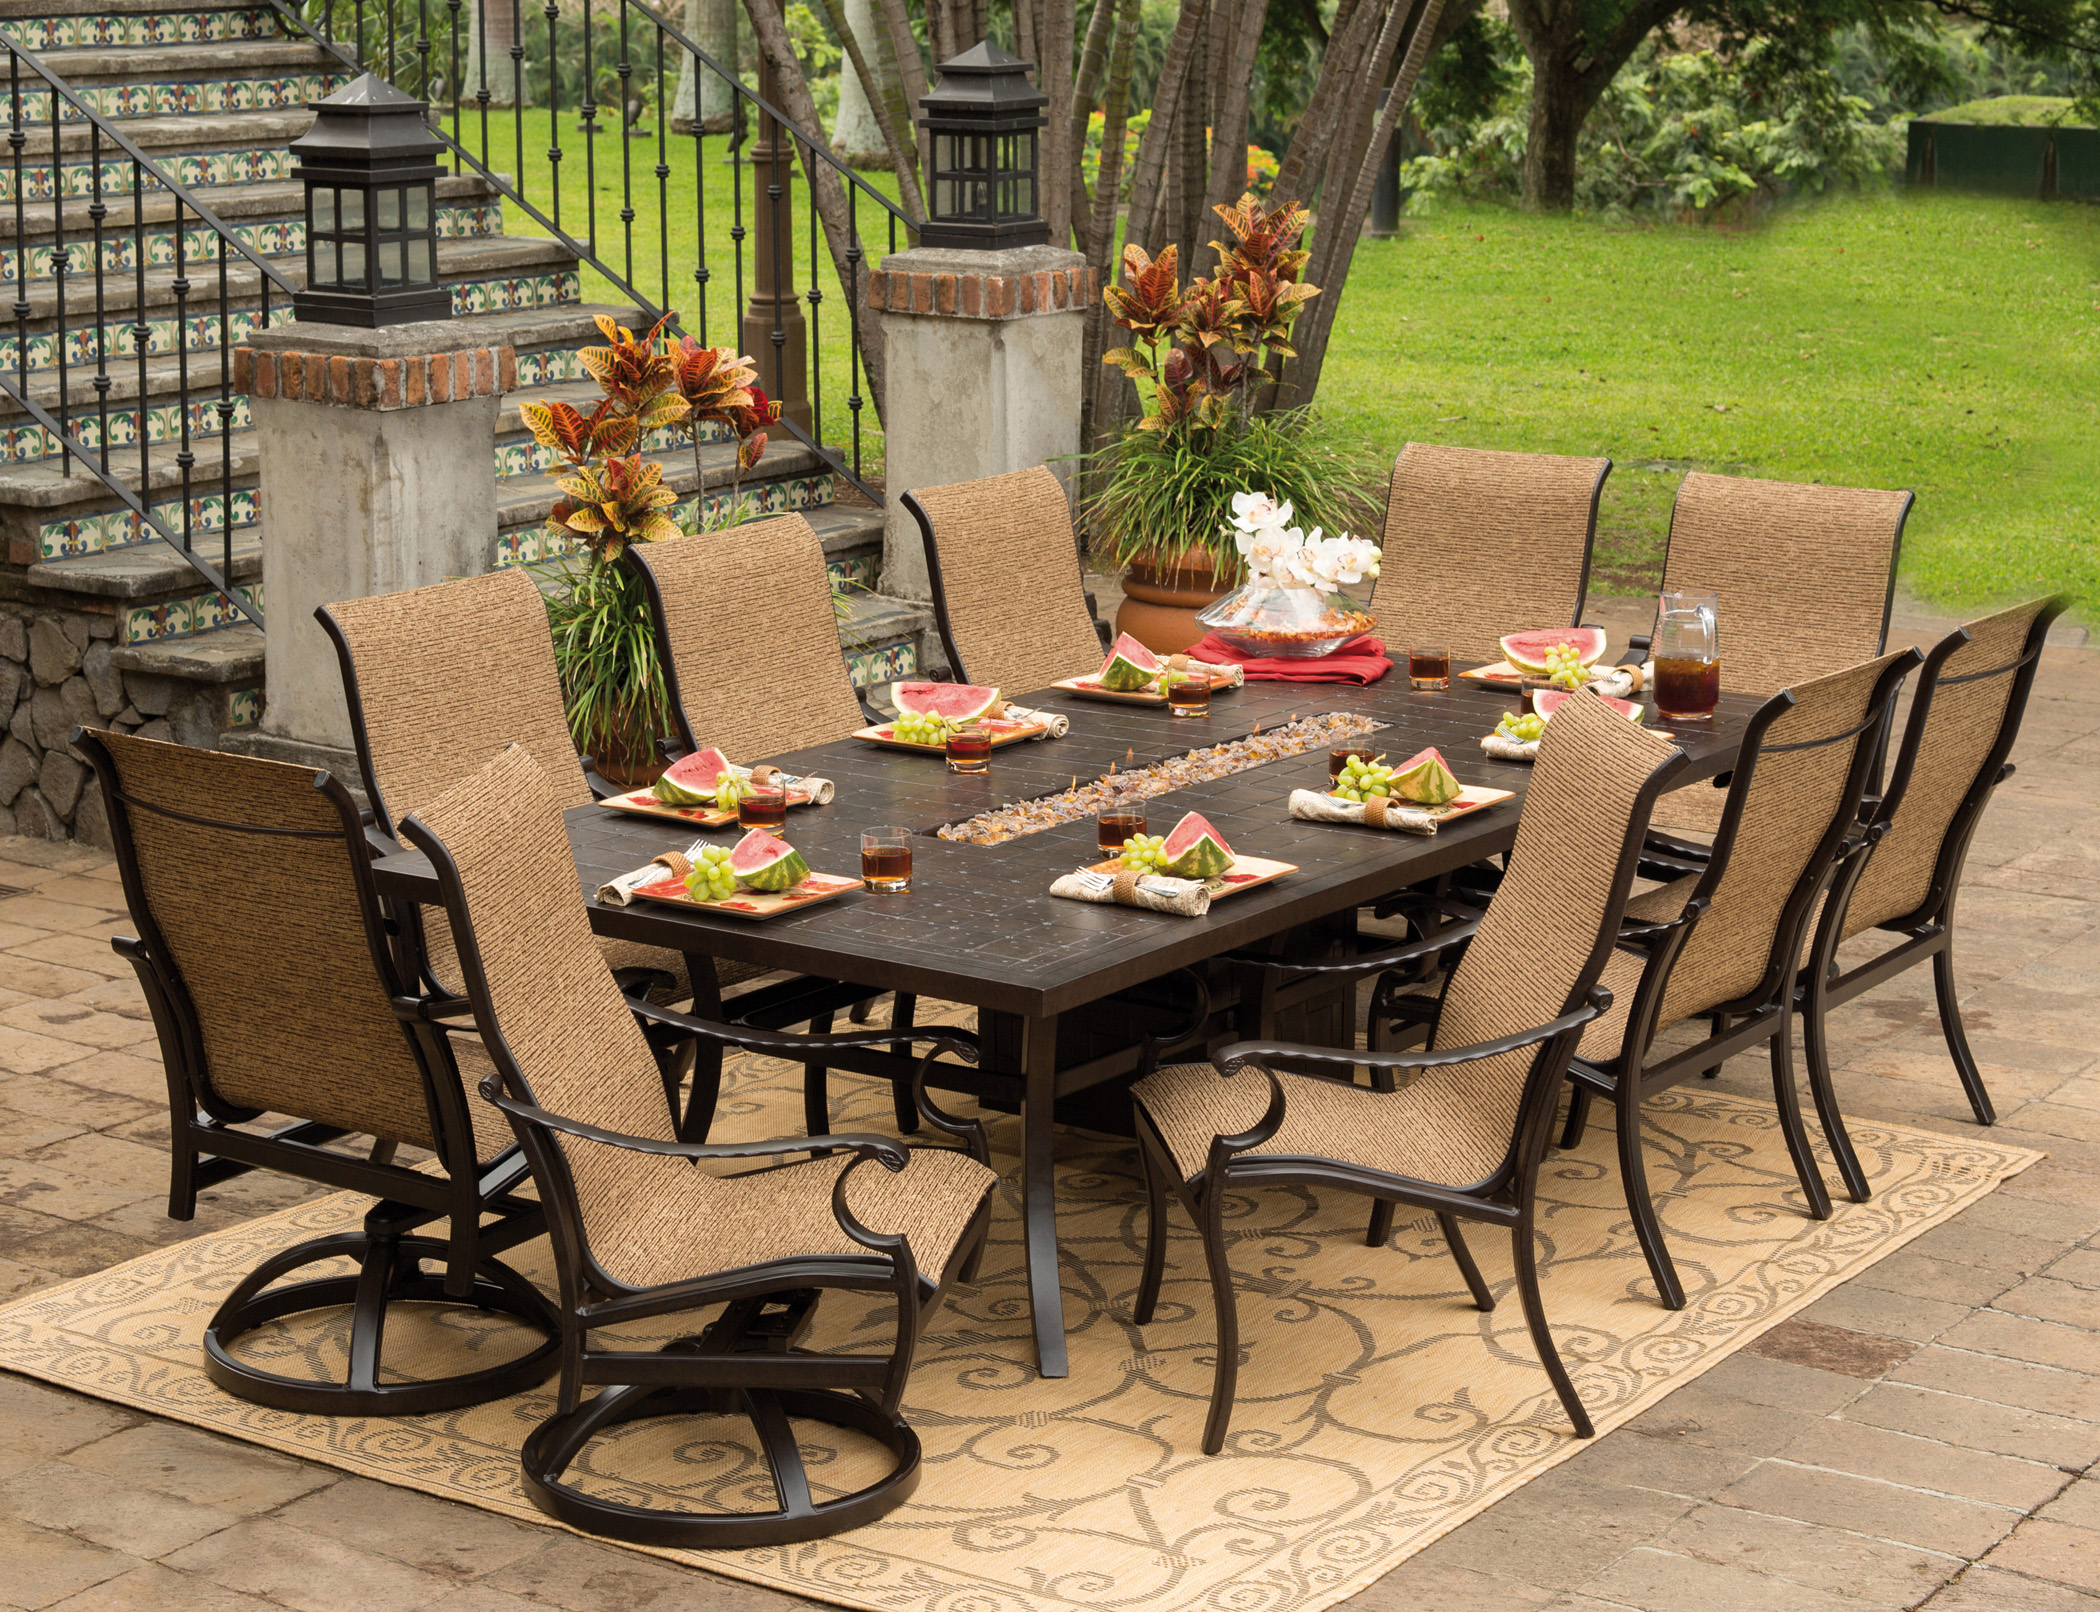 Fireside Dining | Patio & Hearth Blog